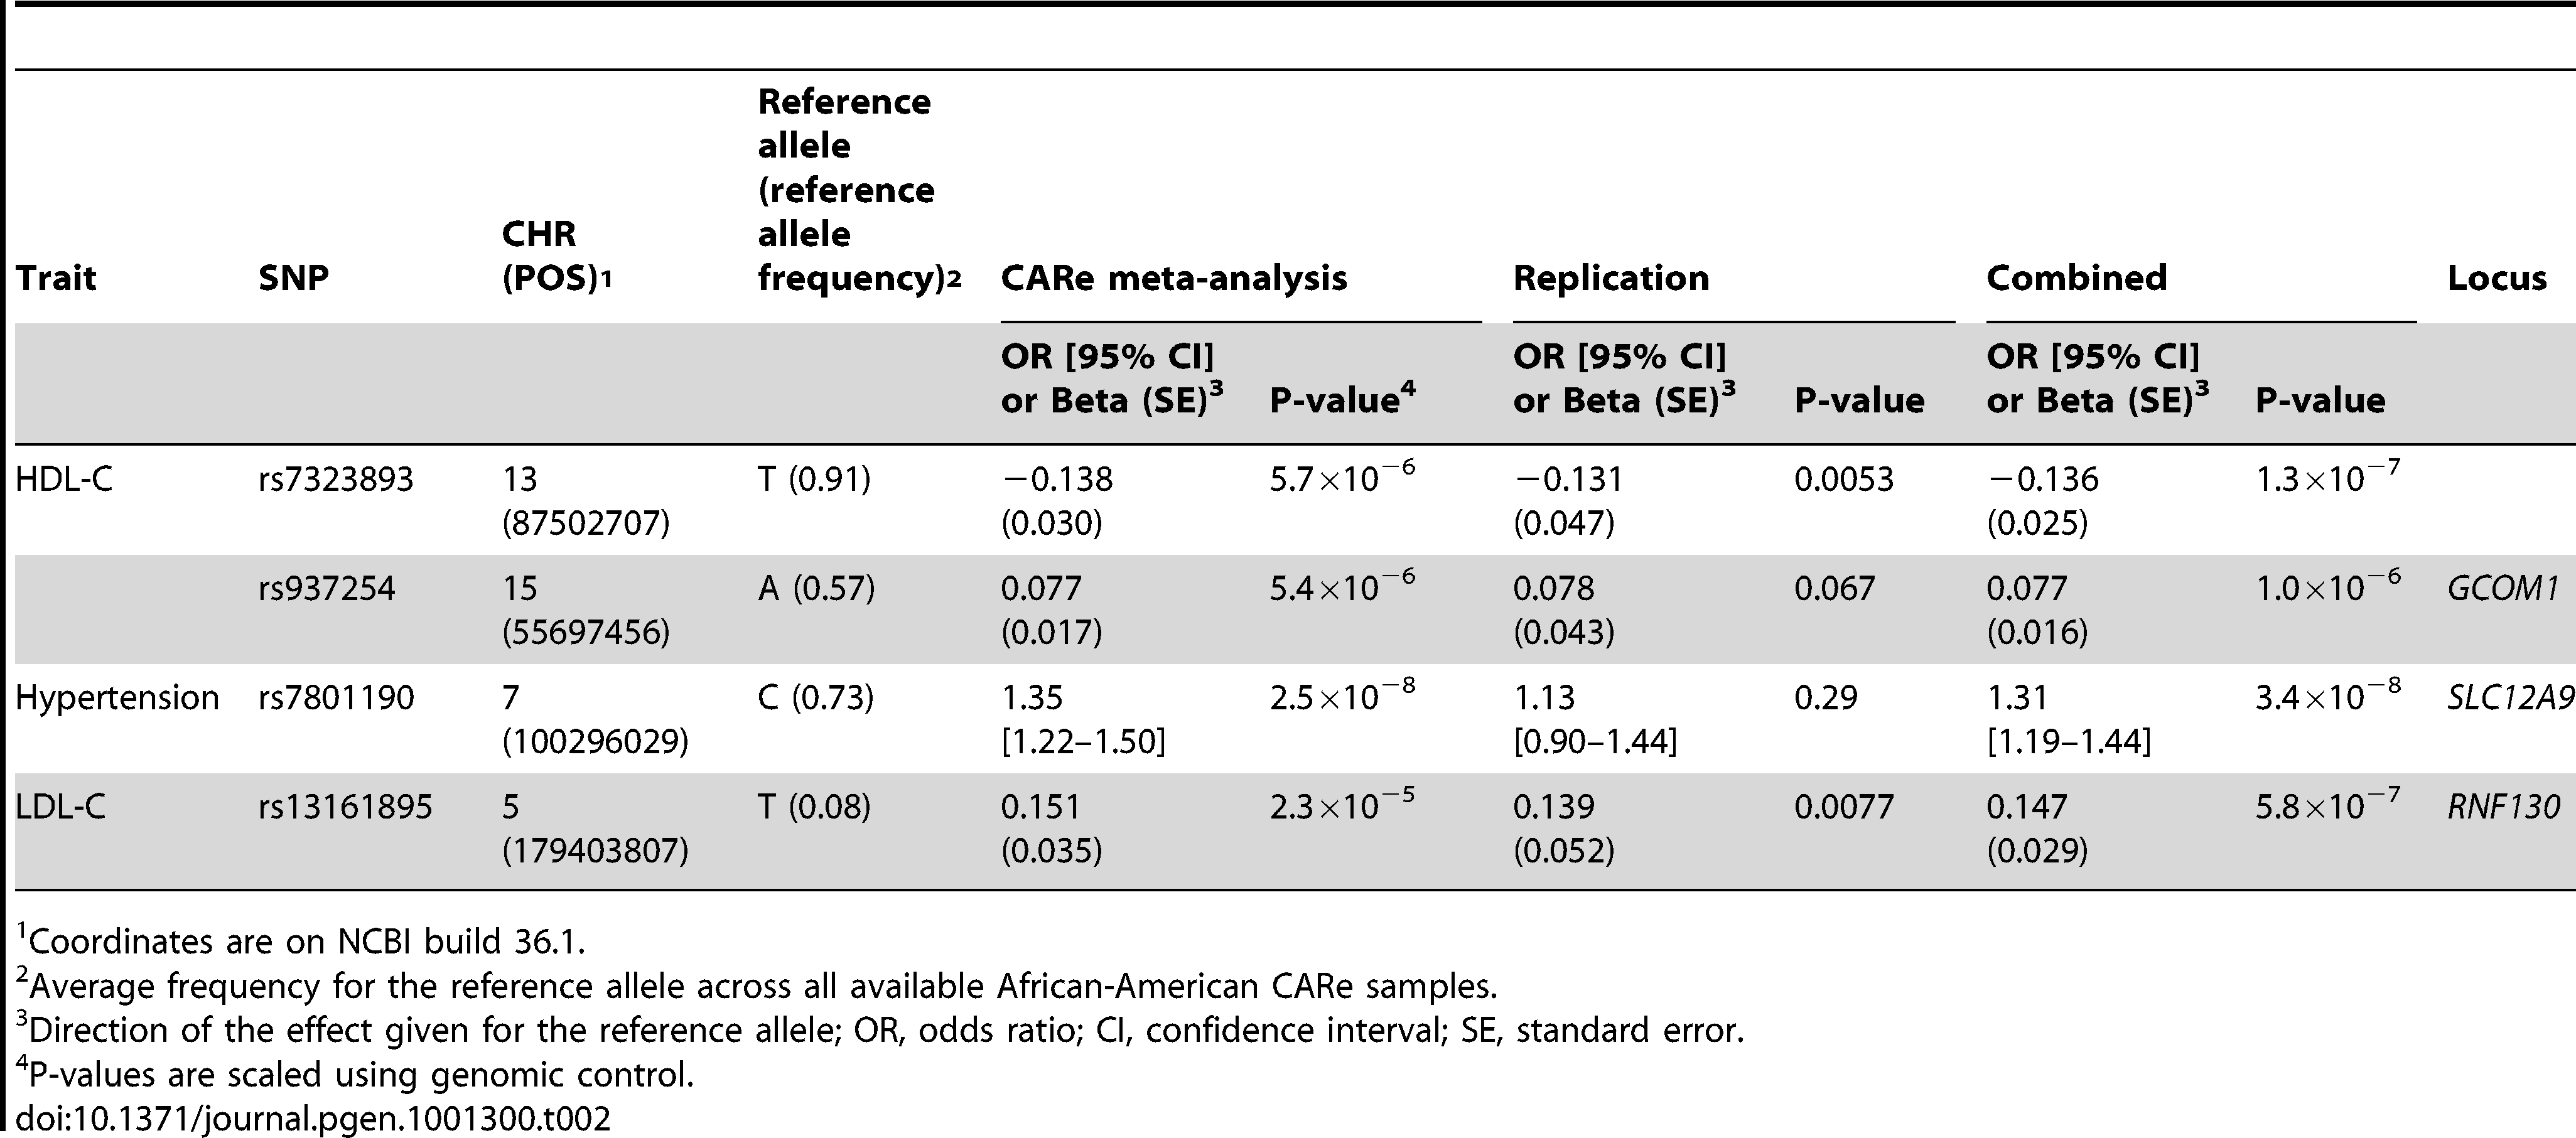 Novel genetic associations (<i>P</i>≤1×10<sup>−6</sup>) between SNPs and coronary heart disease or its risk factors in African Americans.